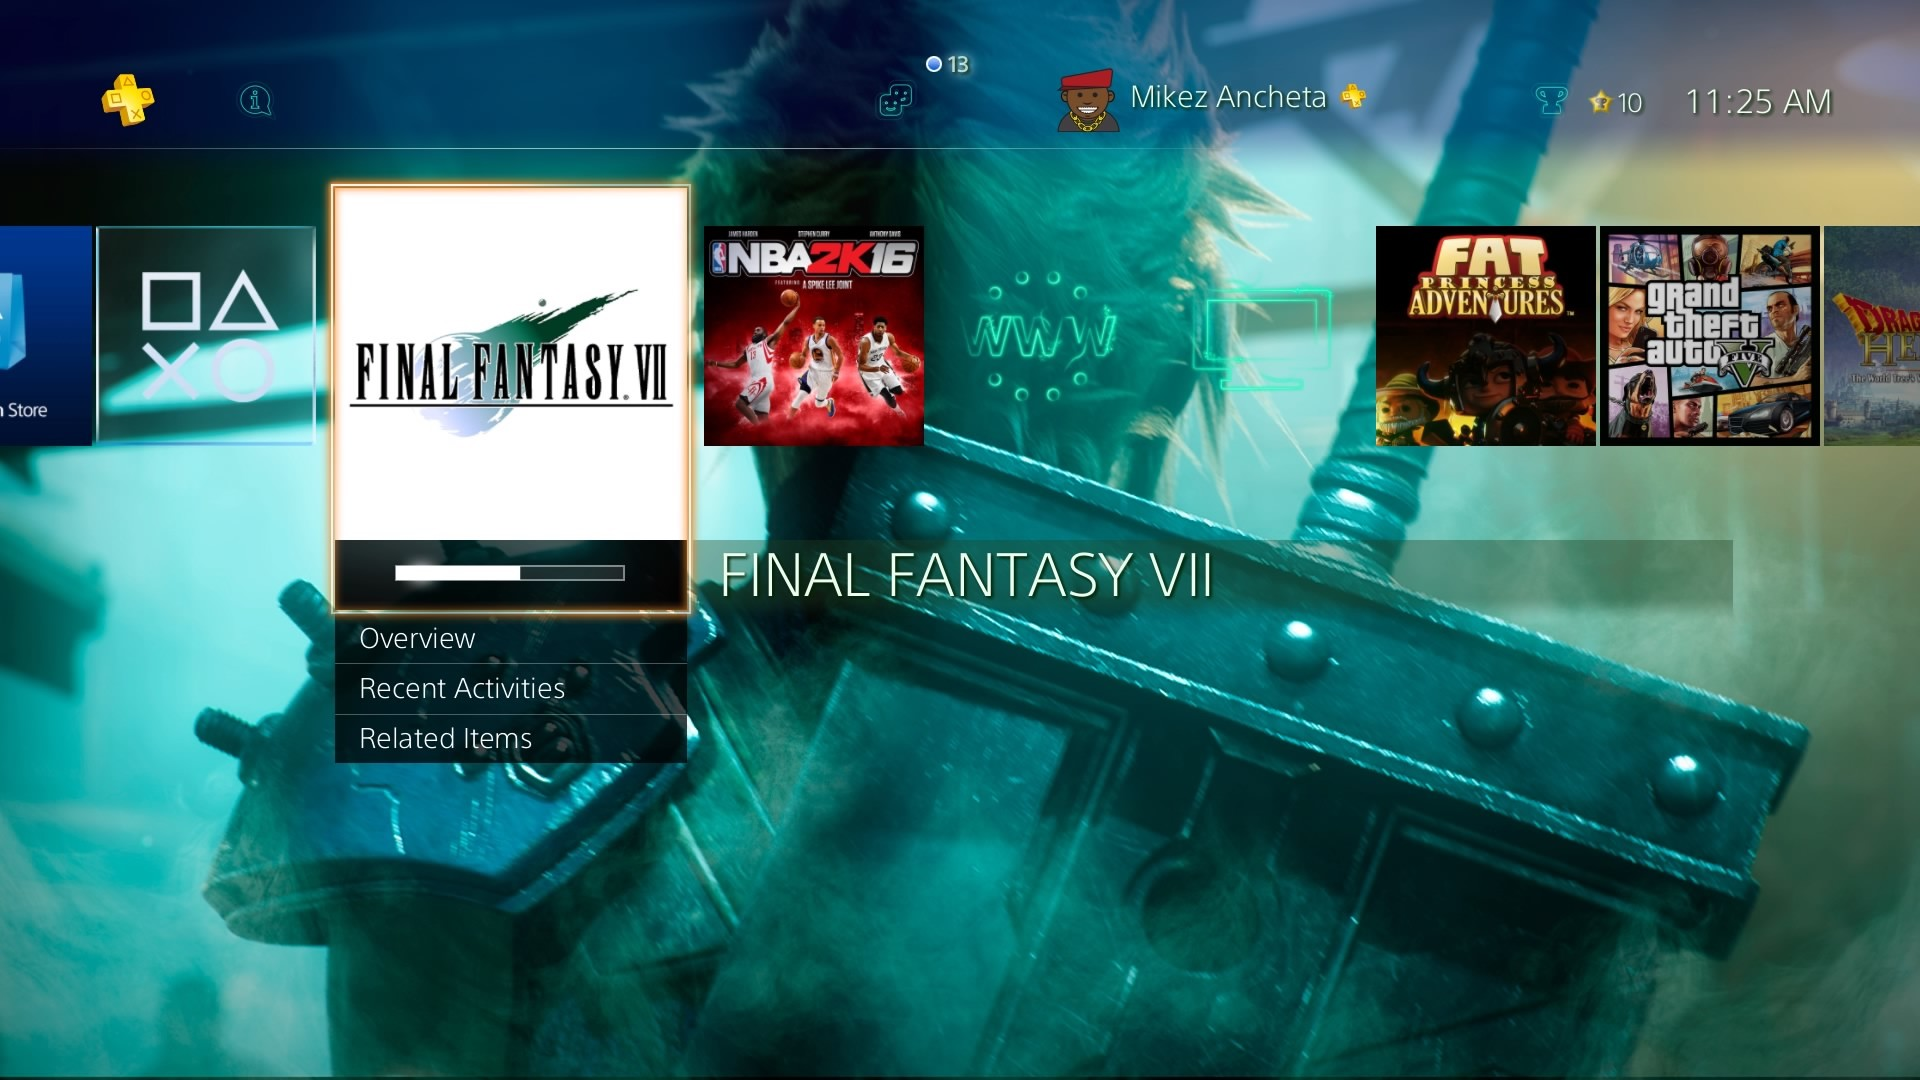 Square Enix also included the Final Fantasy VII Remake announcement video  in the game. The same video they showed that wow the fans during the last  E3.